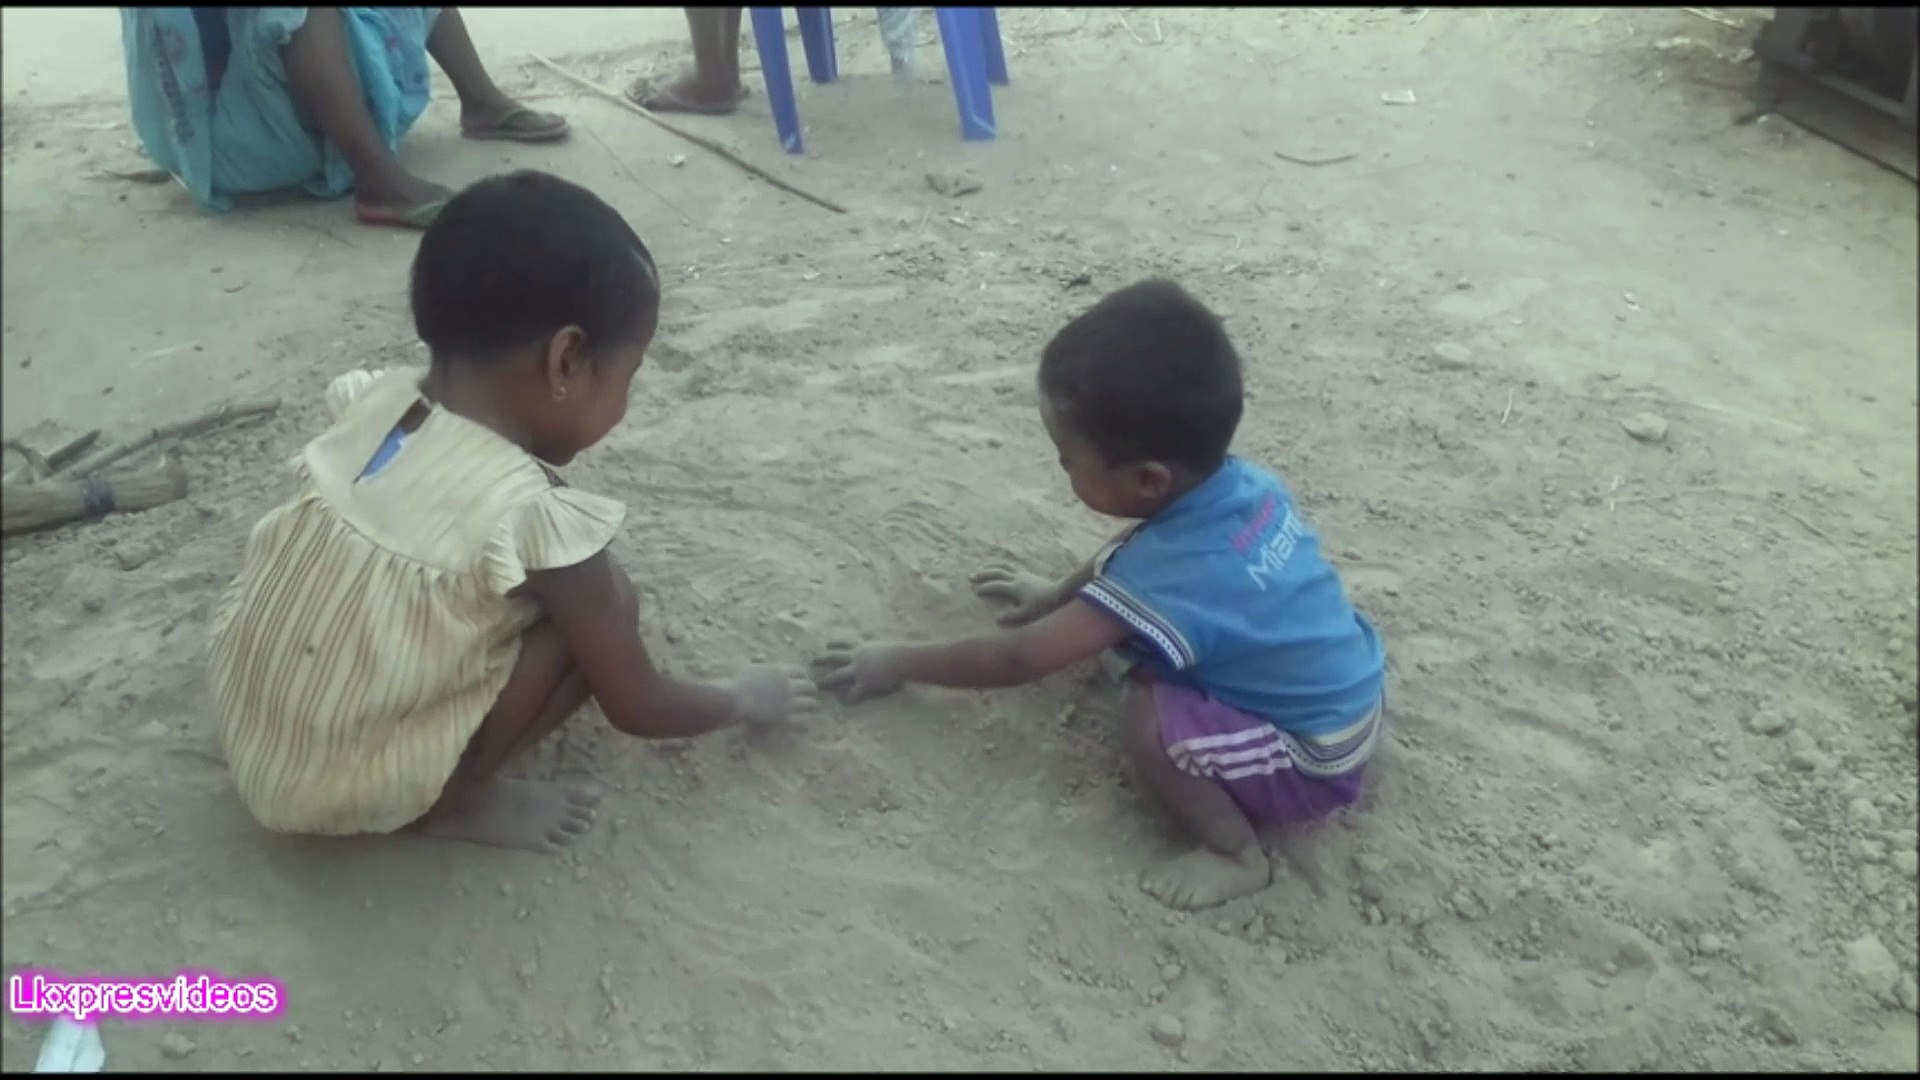 AMAZING LITTLE KID DURING PLAYING